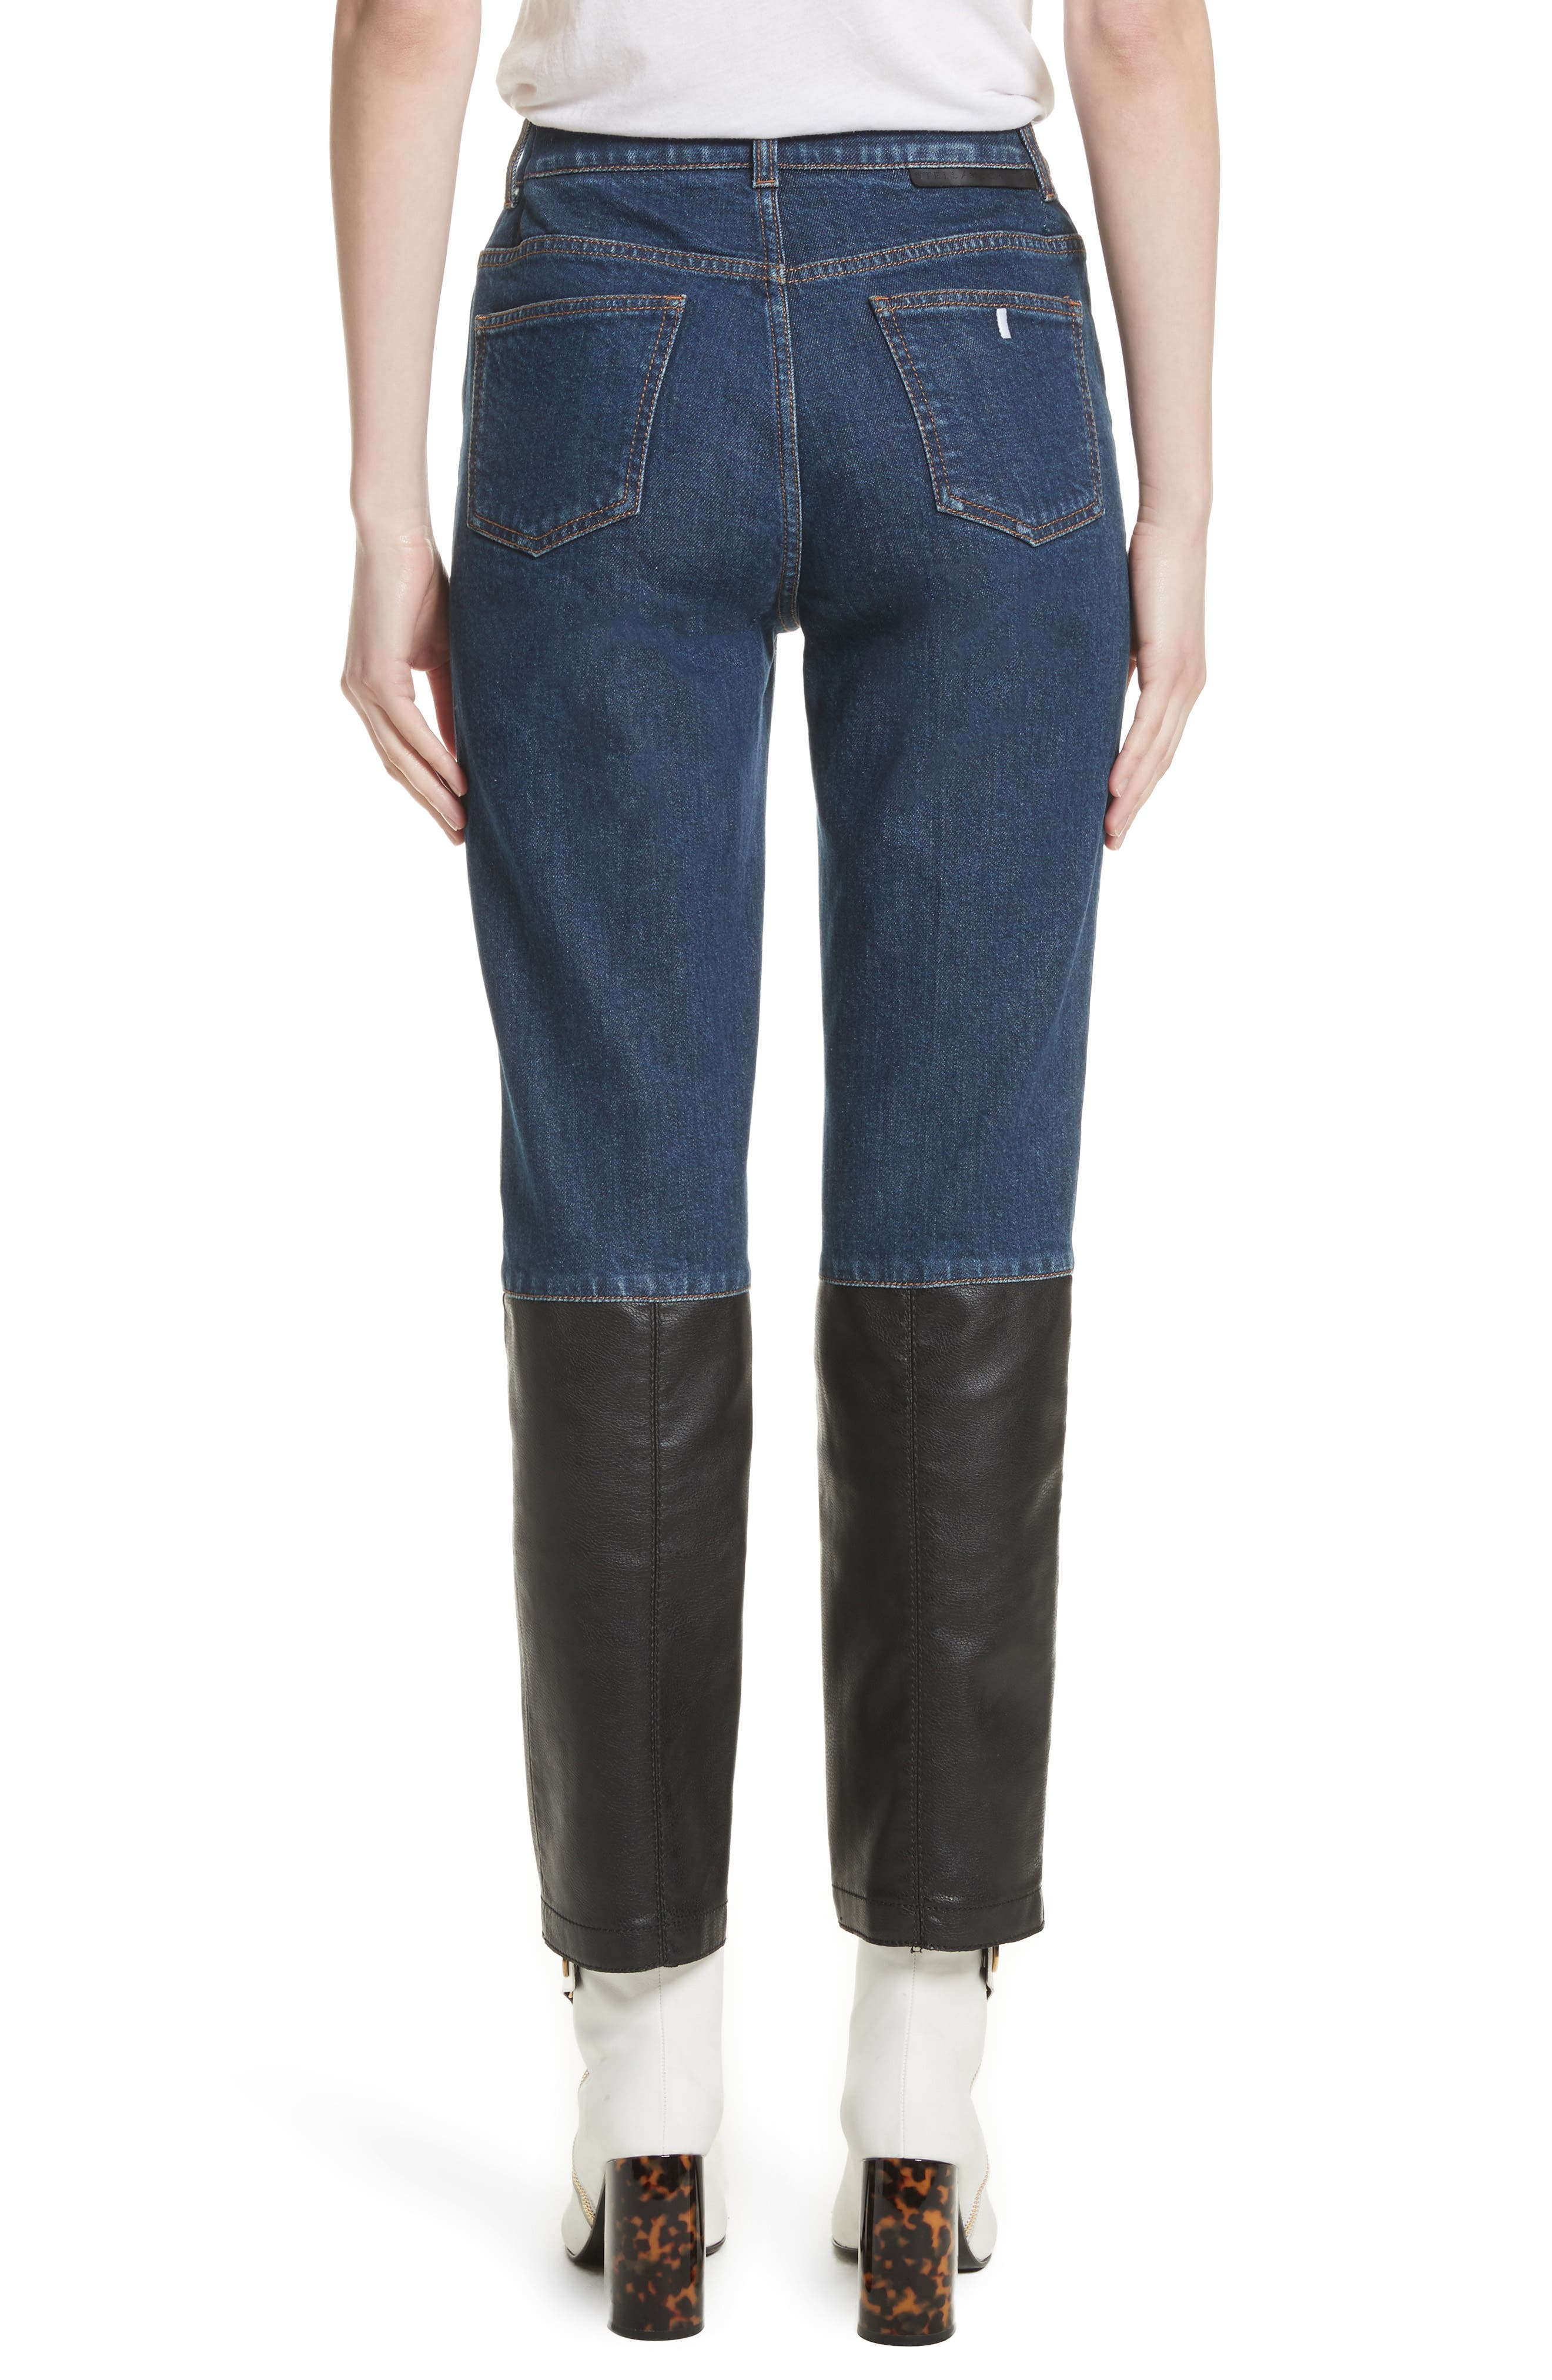 Alter Leather Trim High Waist Straight Leg Jeans,                             Alternate thumbnail 2, color,                             400